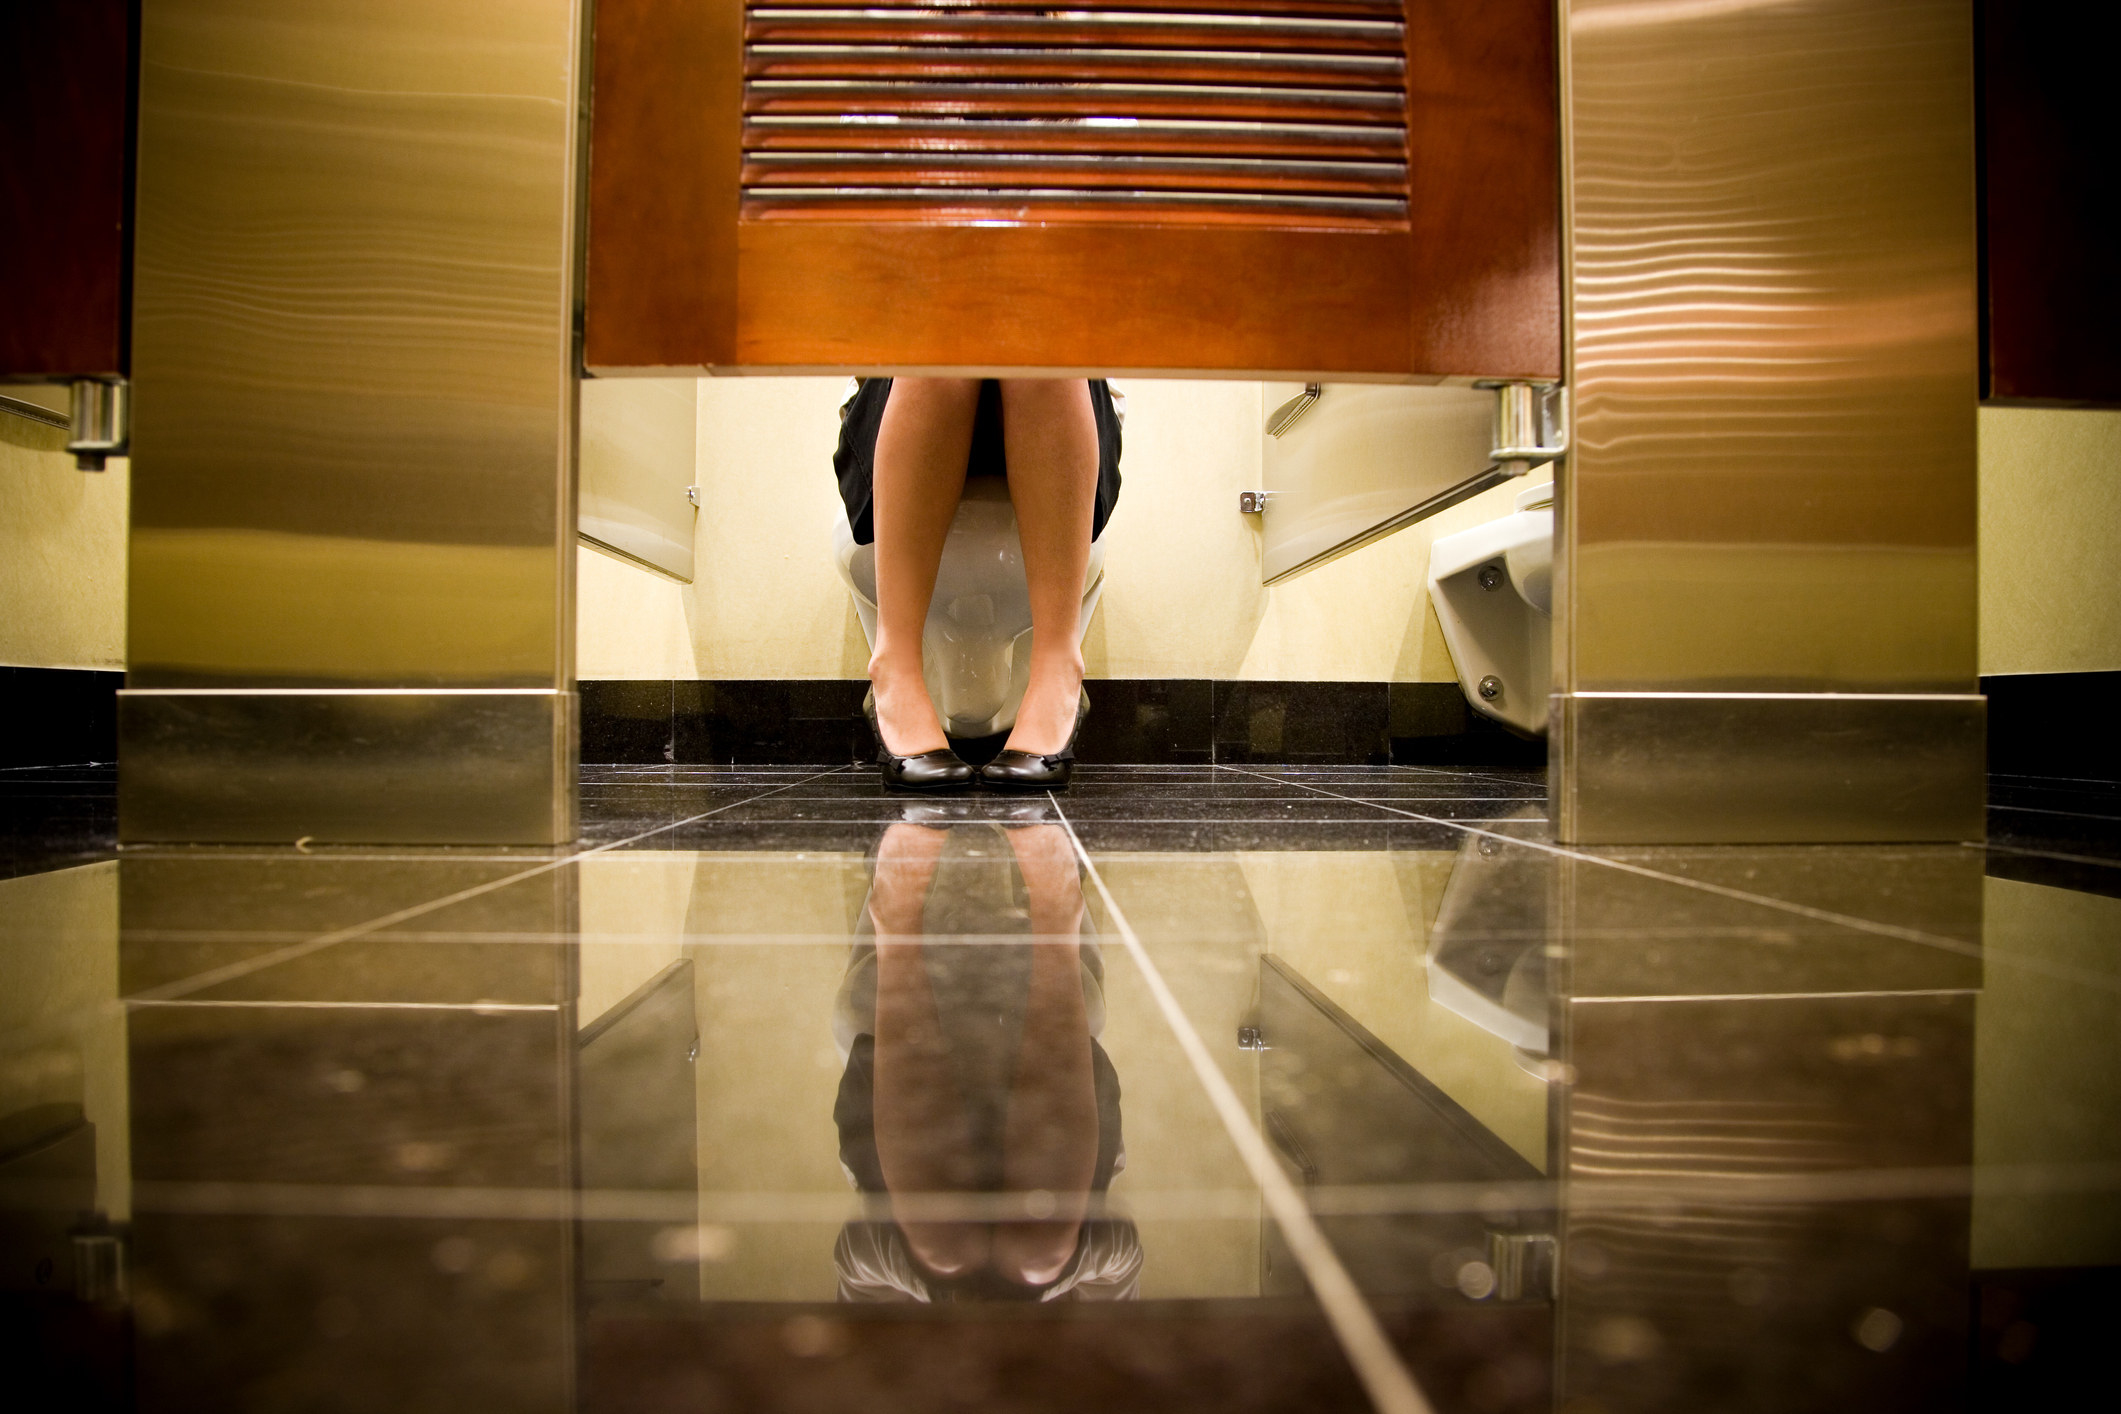 A woman in a public restroom stall